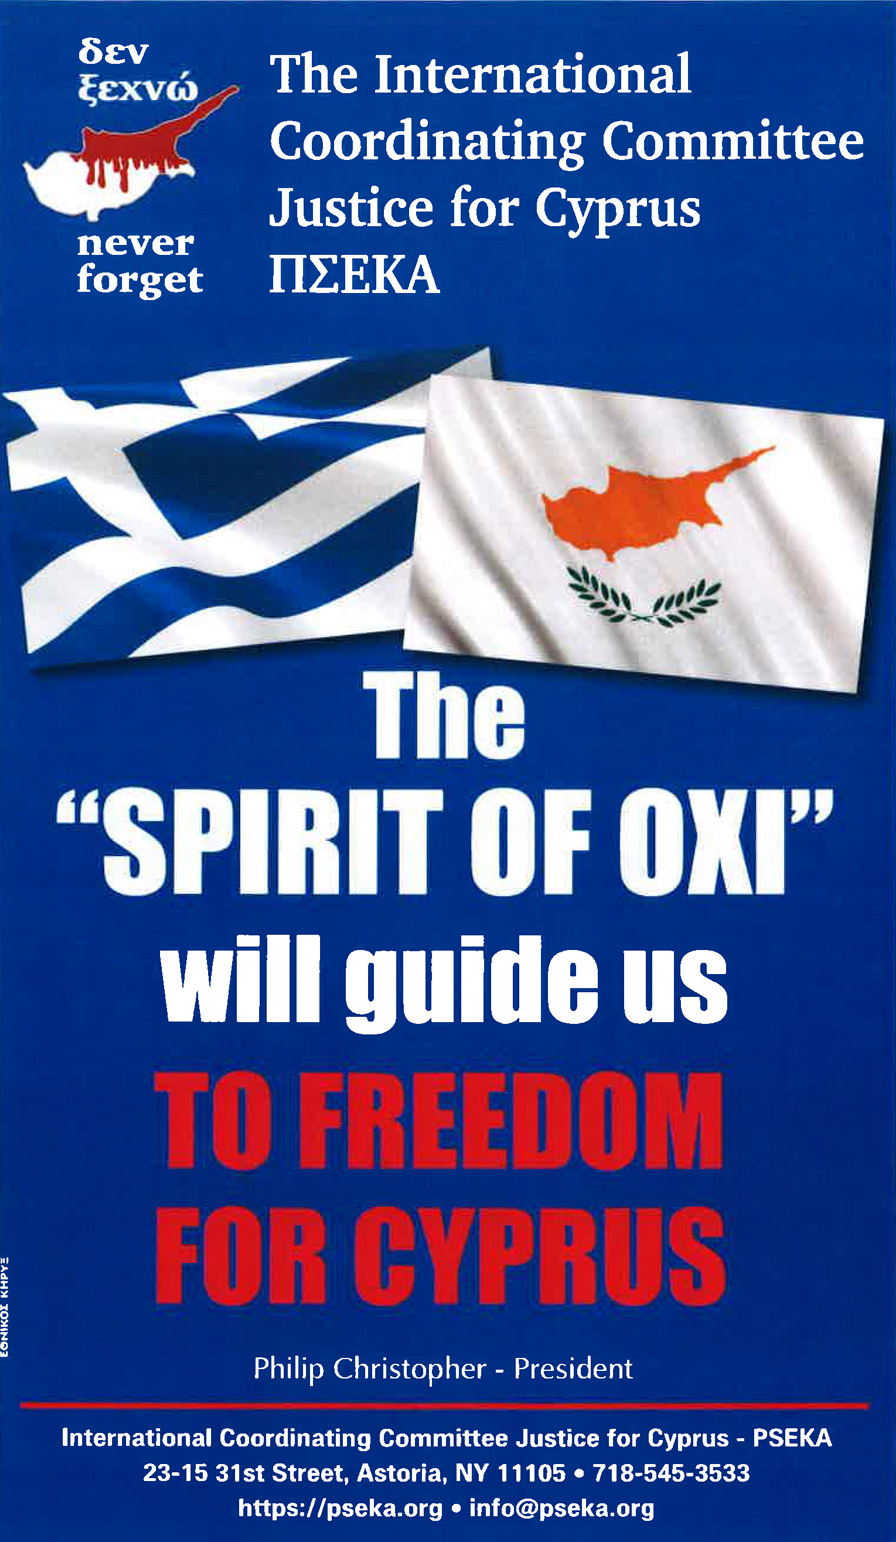 The Spirit of OXI will guide us to FREEDOM FOR CYPRUS